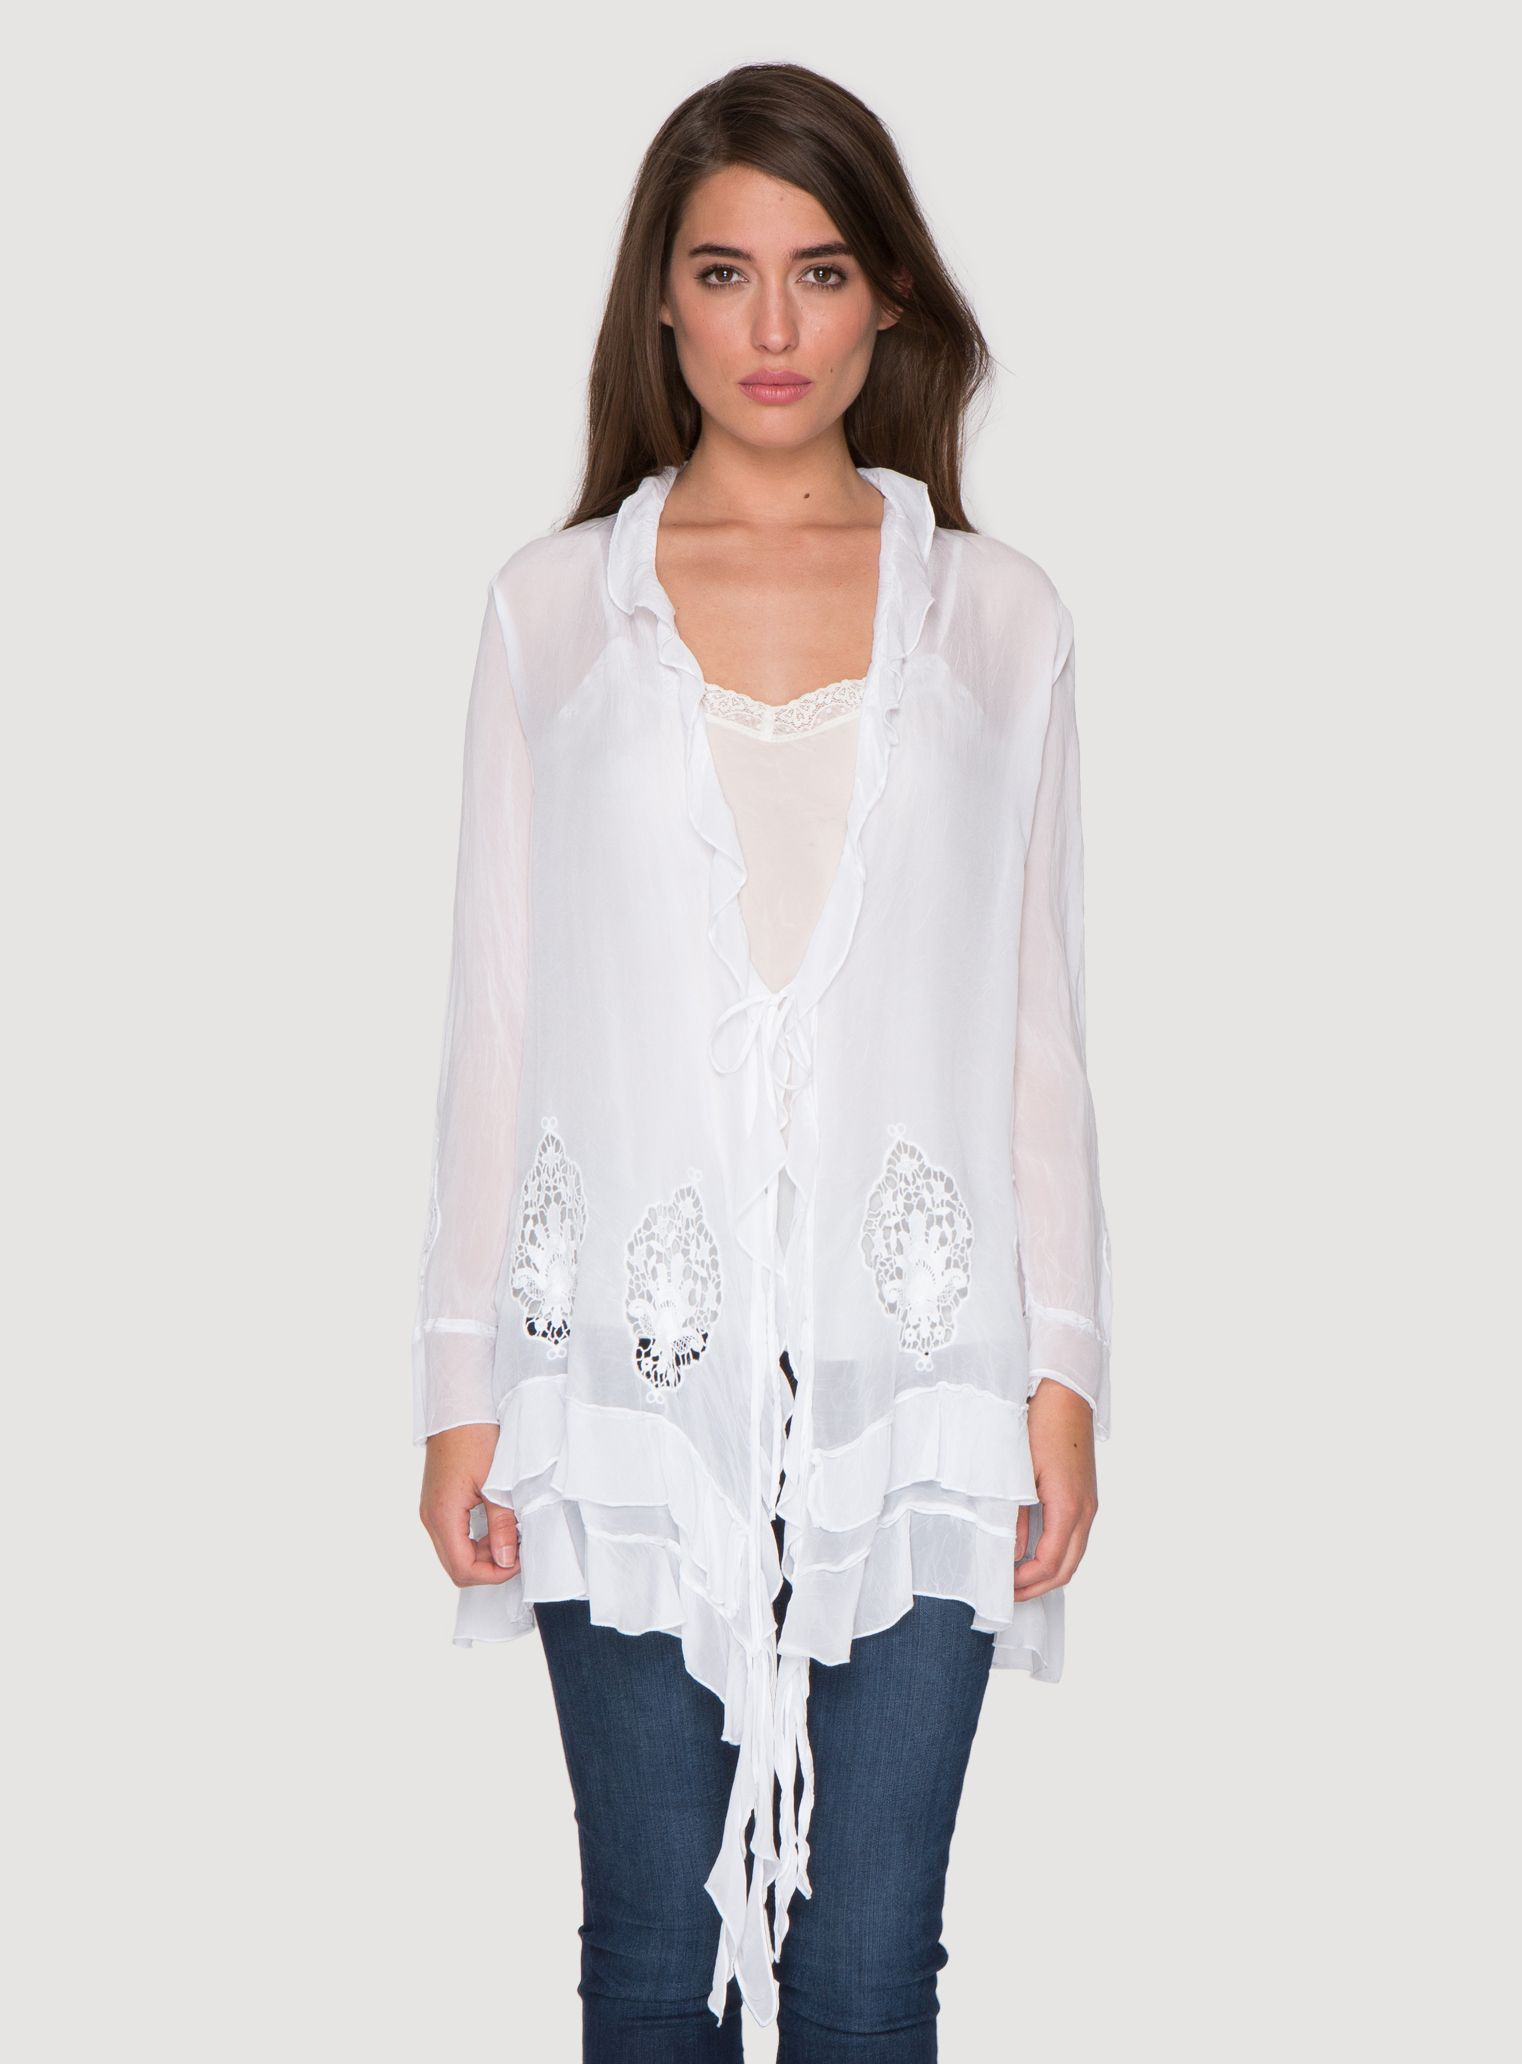 Johnny Was Collection Issy Ruffle Cover-Up Jacket in White